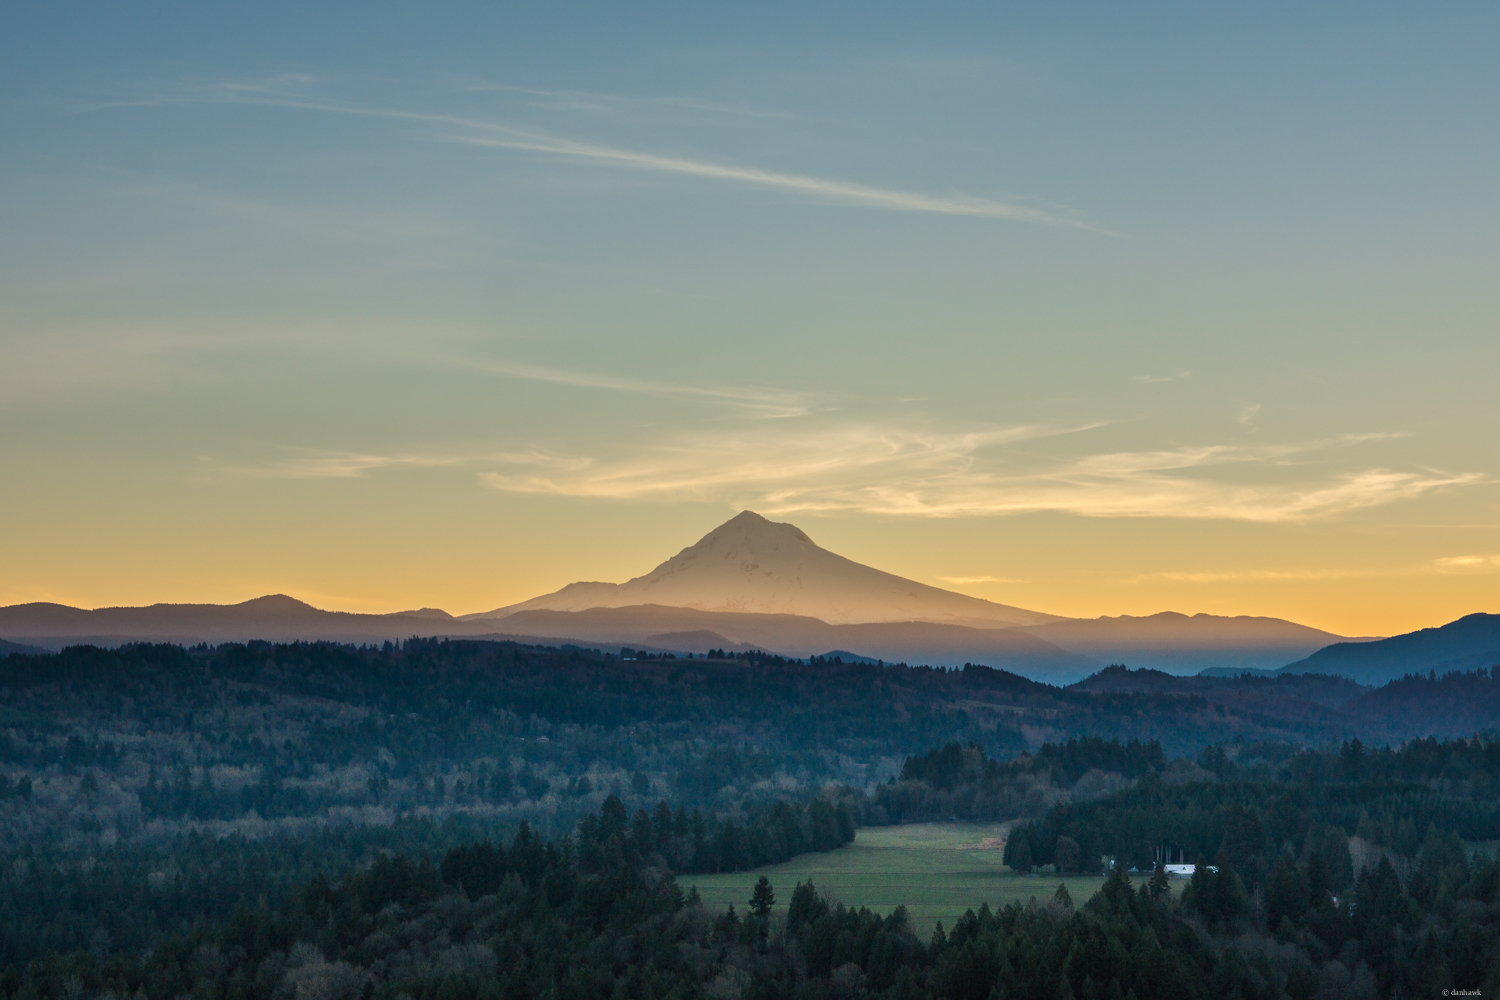 Mt Hood Jonsrud Sunrise | 50mm, f/6.3, ISO 100, 1/320